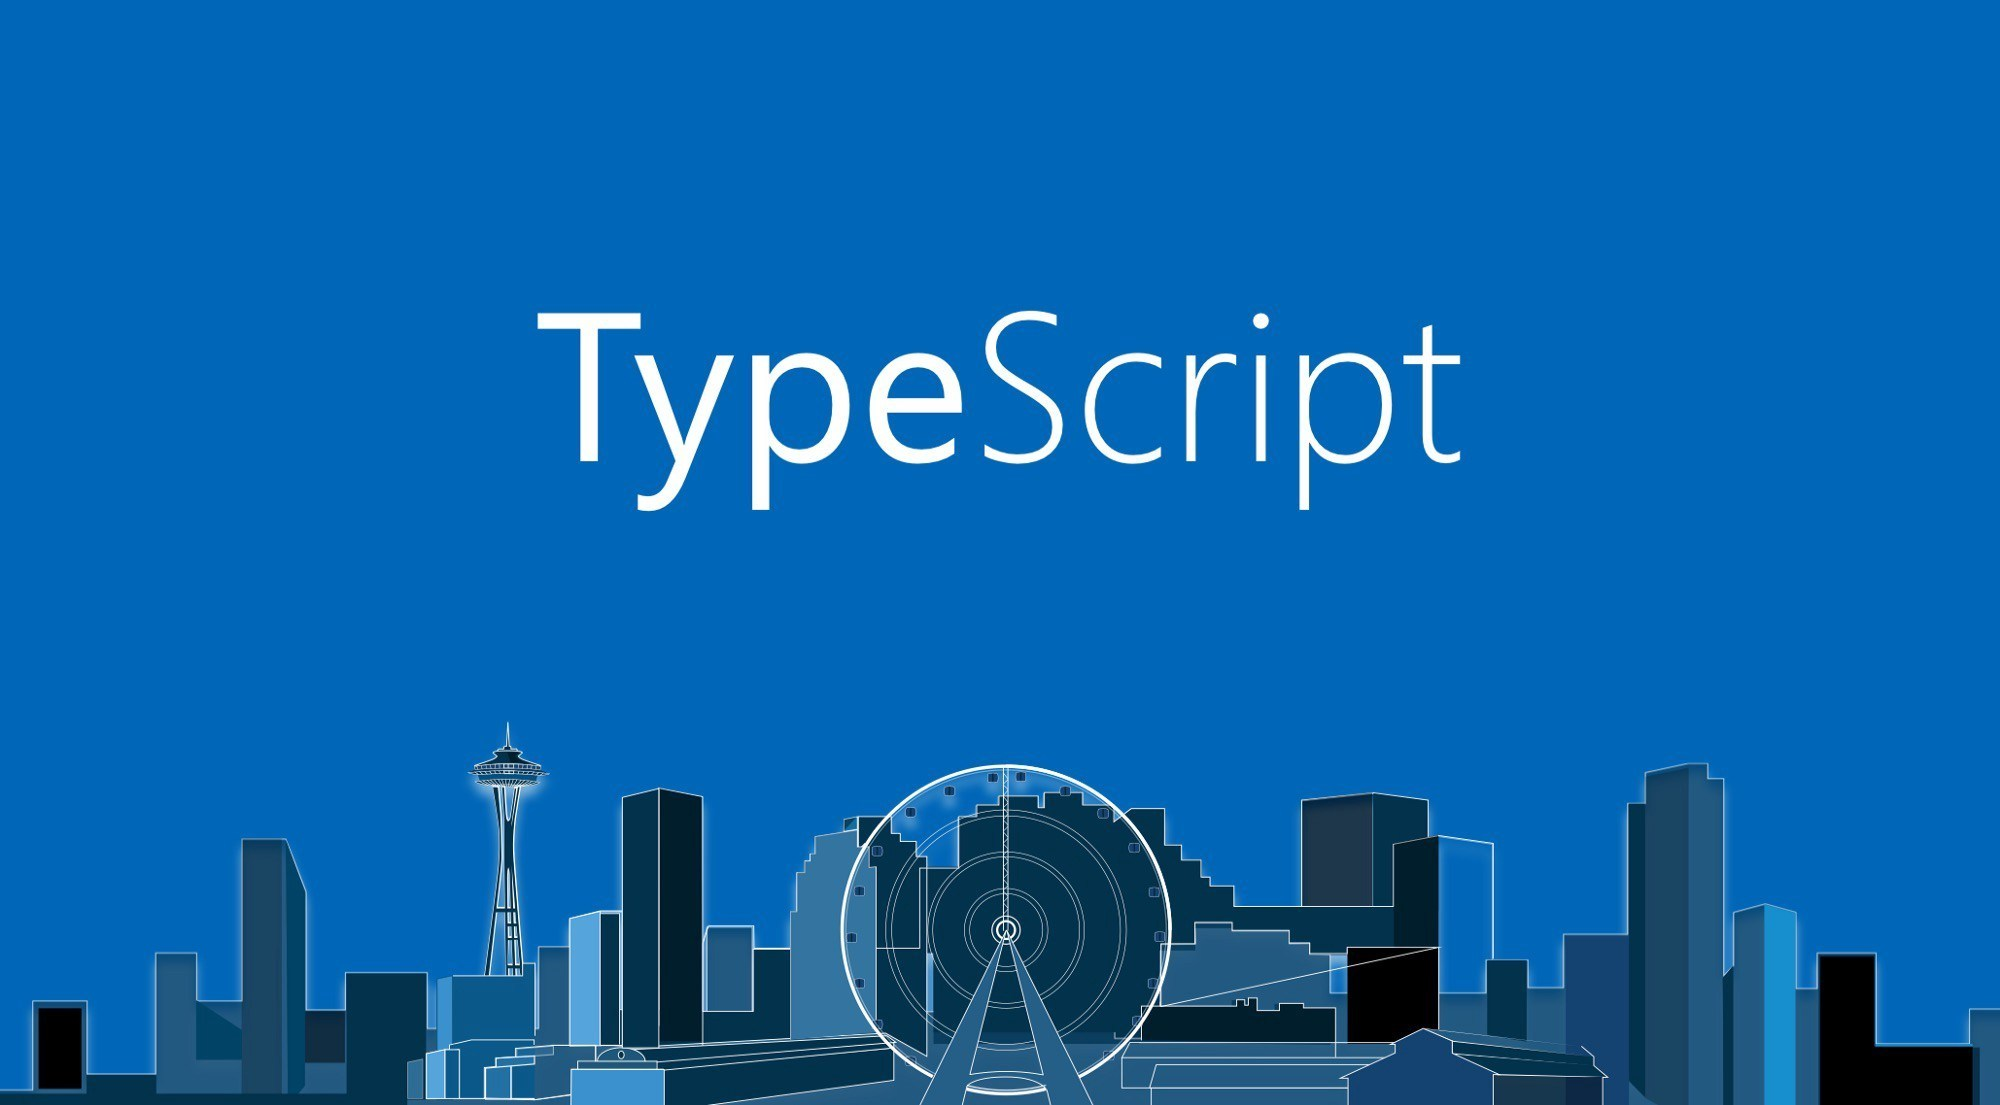 How to create a React project with typescript?